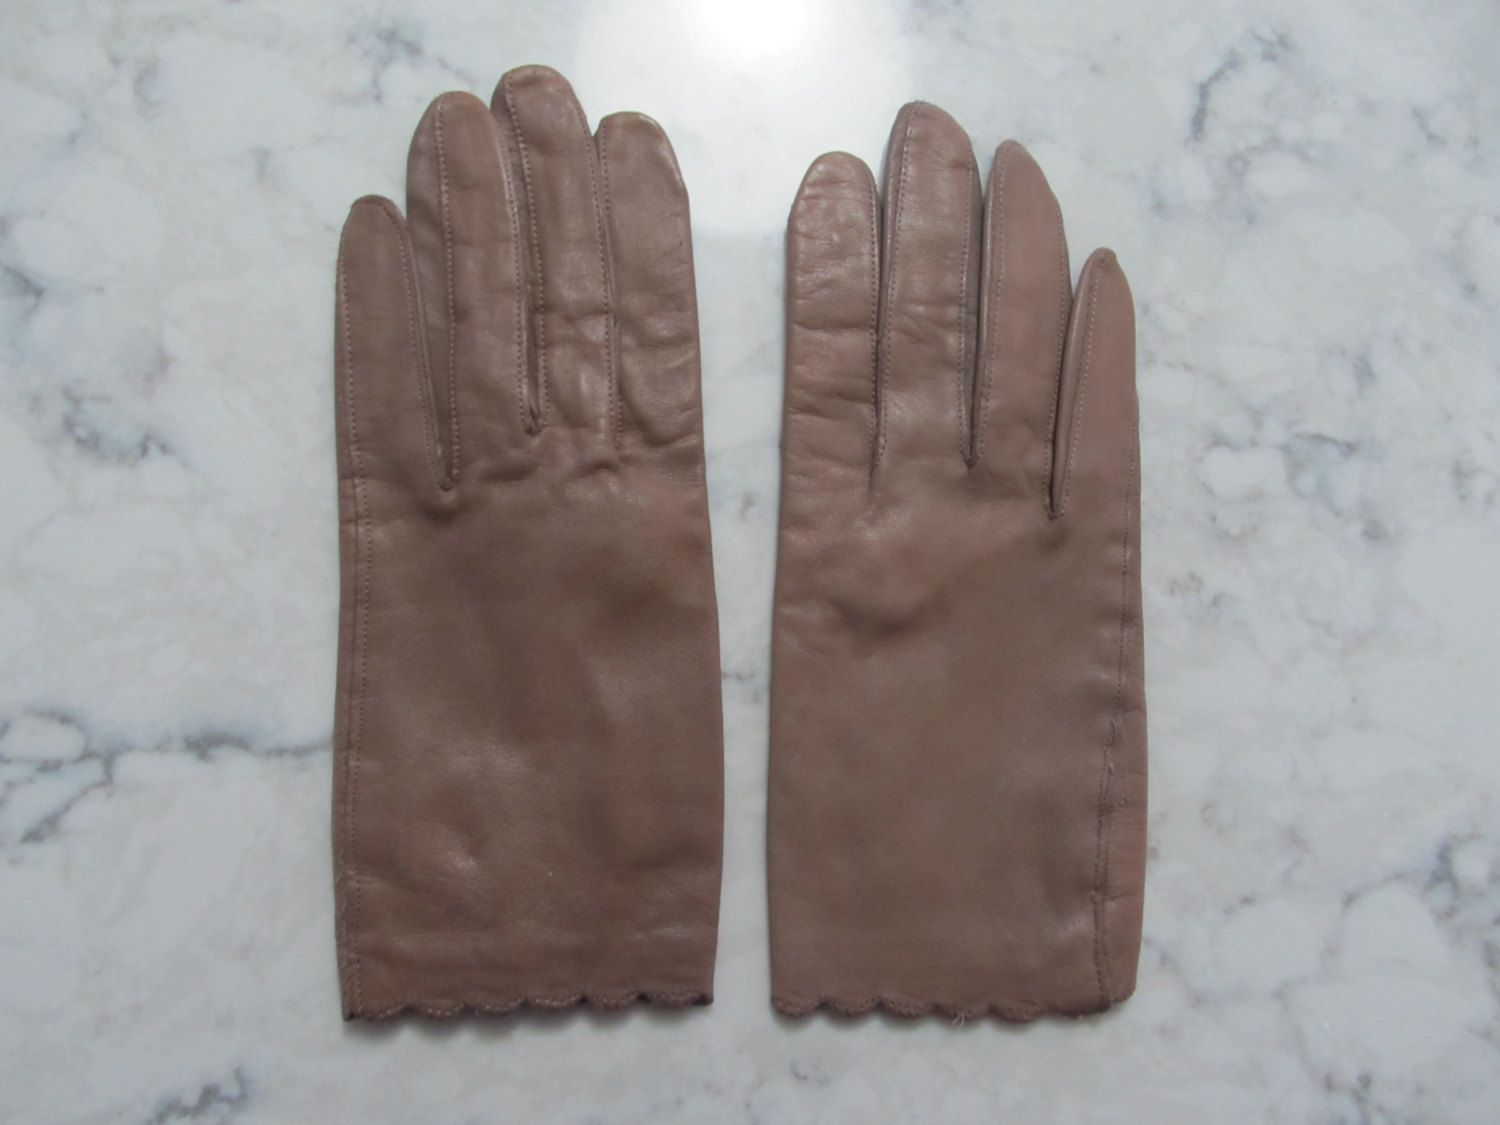 "VINTAGE 1950's Lined Cocoa Brown Leather Wrist Length Gloves---8"" long---Size 6 to 6 1/2 ---Glove Auction #1165 by PrimaMona on Etsy"